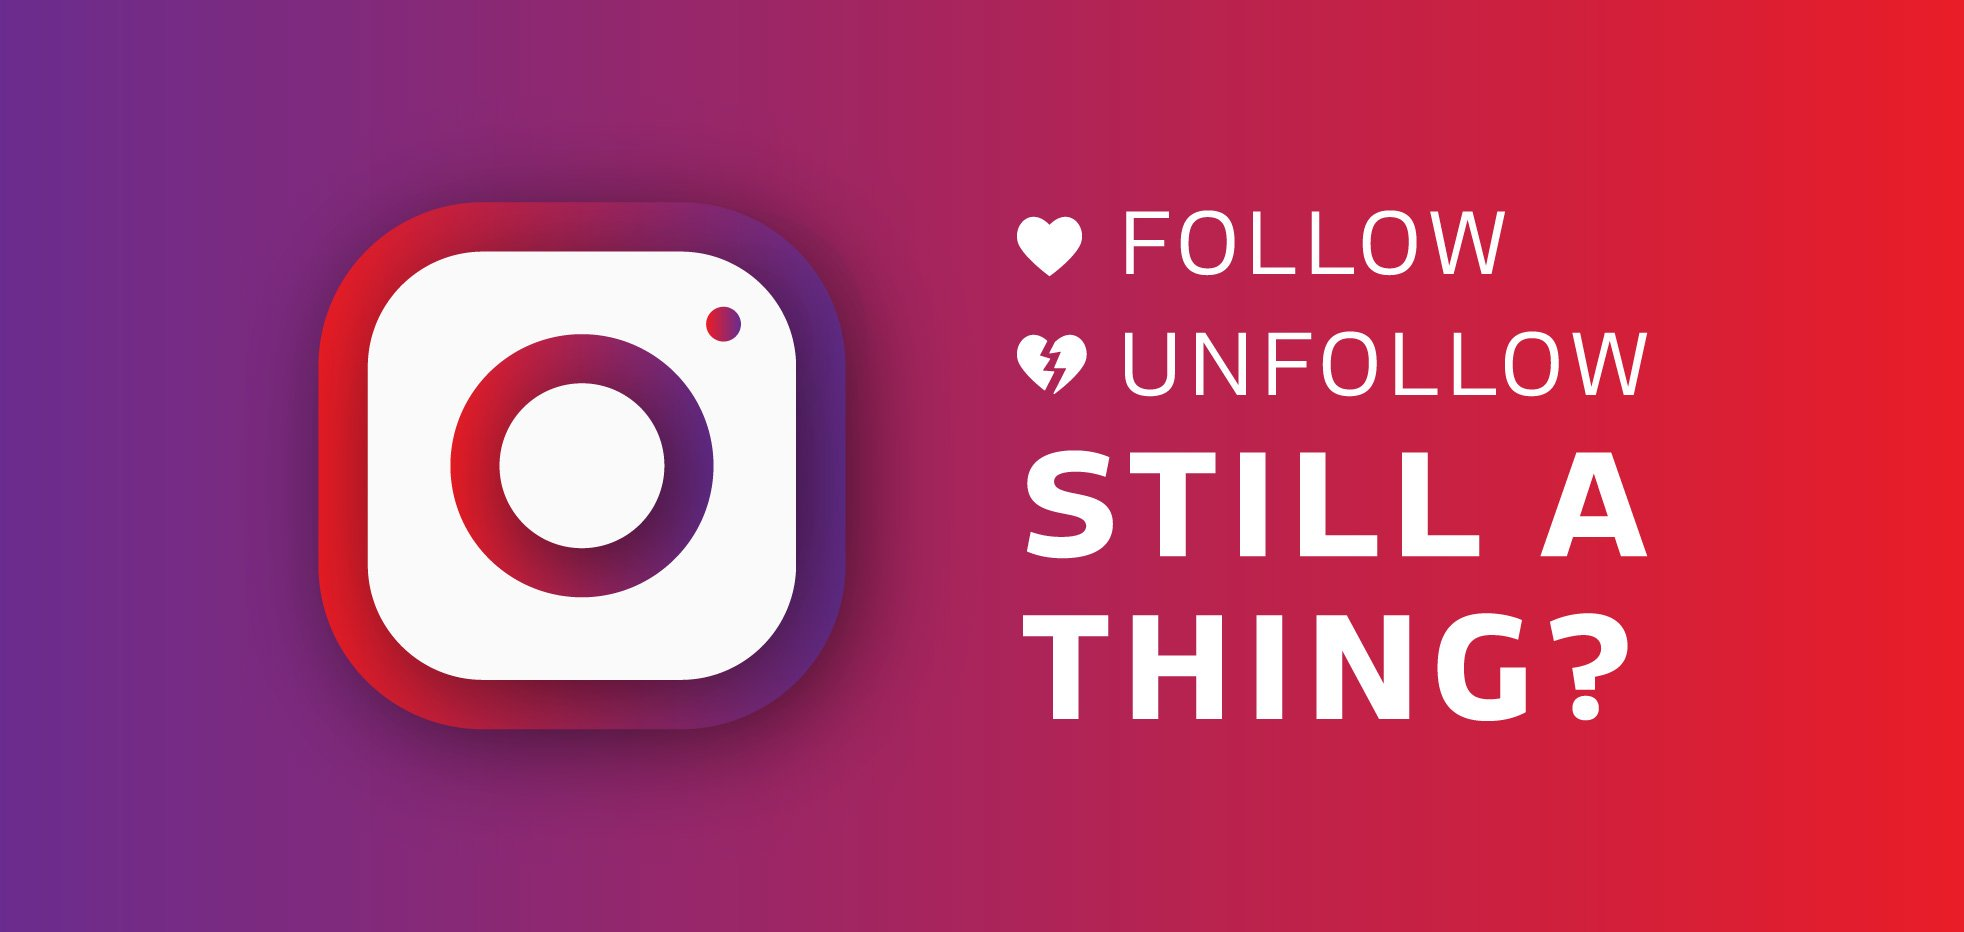 Blog post about the instagram algorithm and follow unfollow tactics and follow unfollow bots and farms by Sketch Corp.